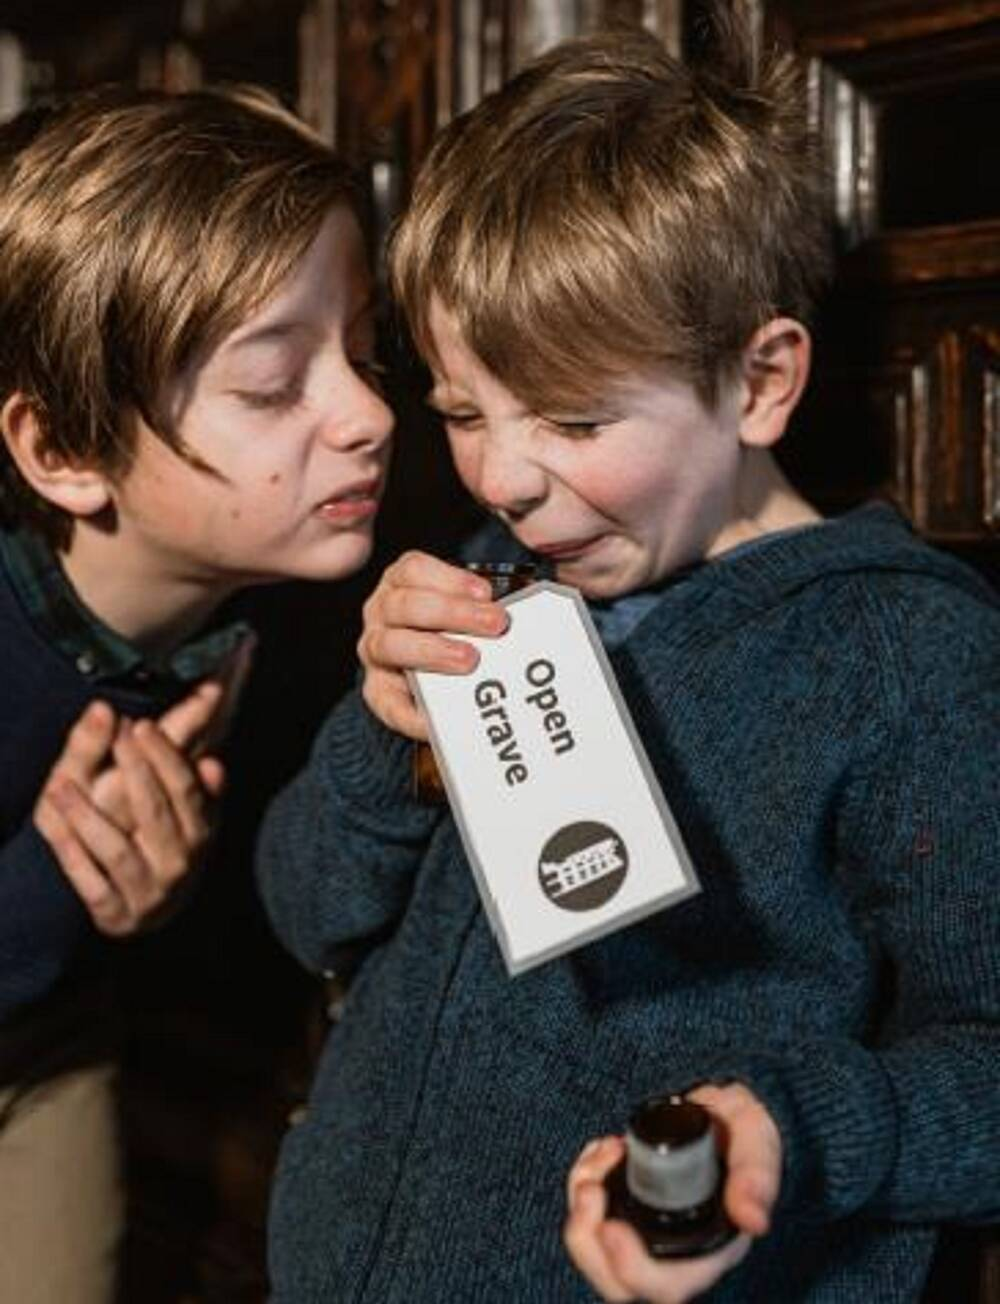 Two young boys grimace as they smell an open small bottle. The label of the bottle reads: Open Grave. One boy holds the stopper out in front of him.